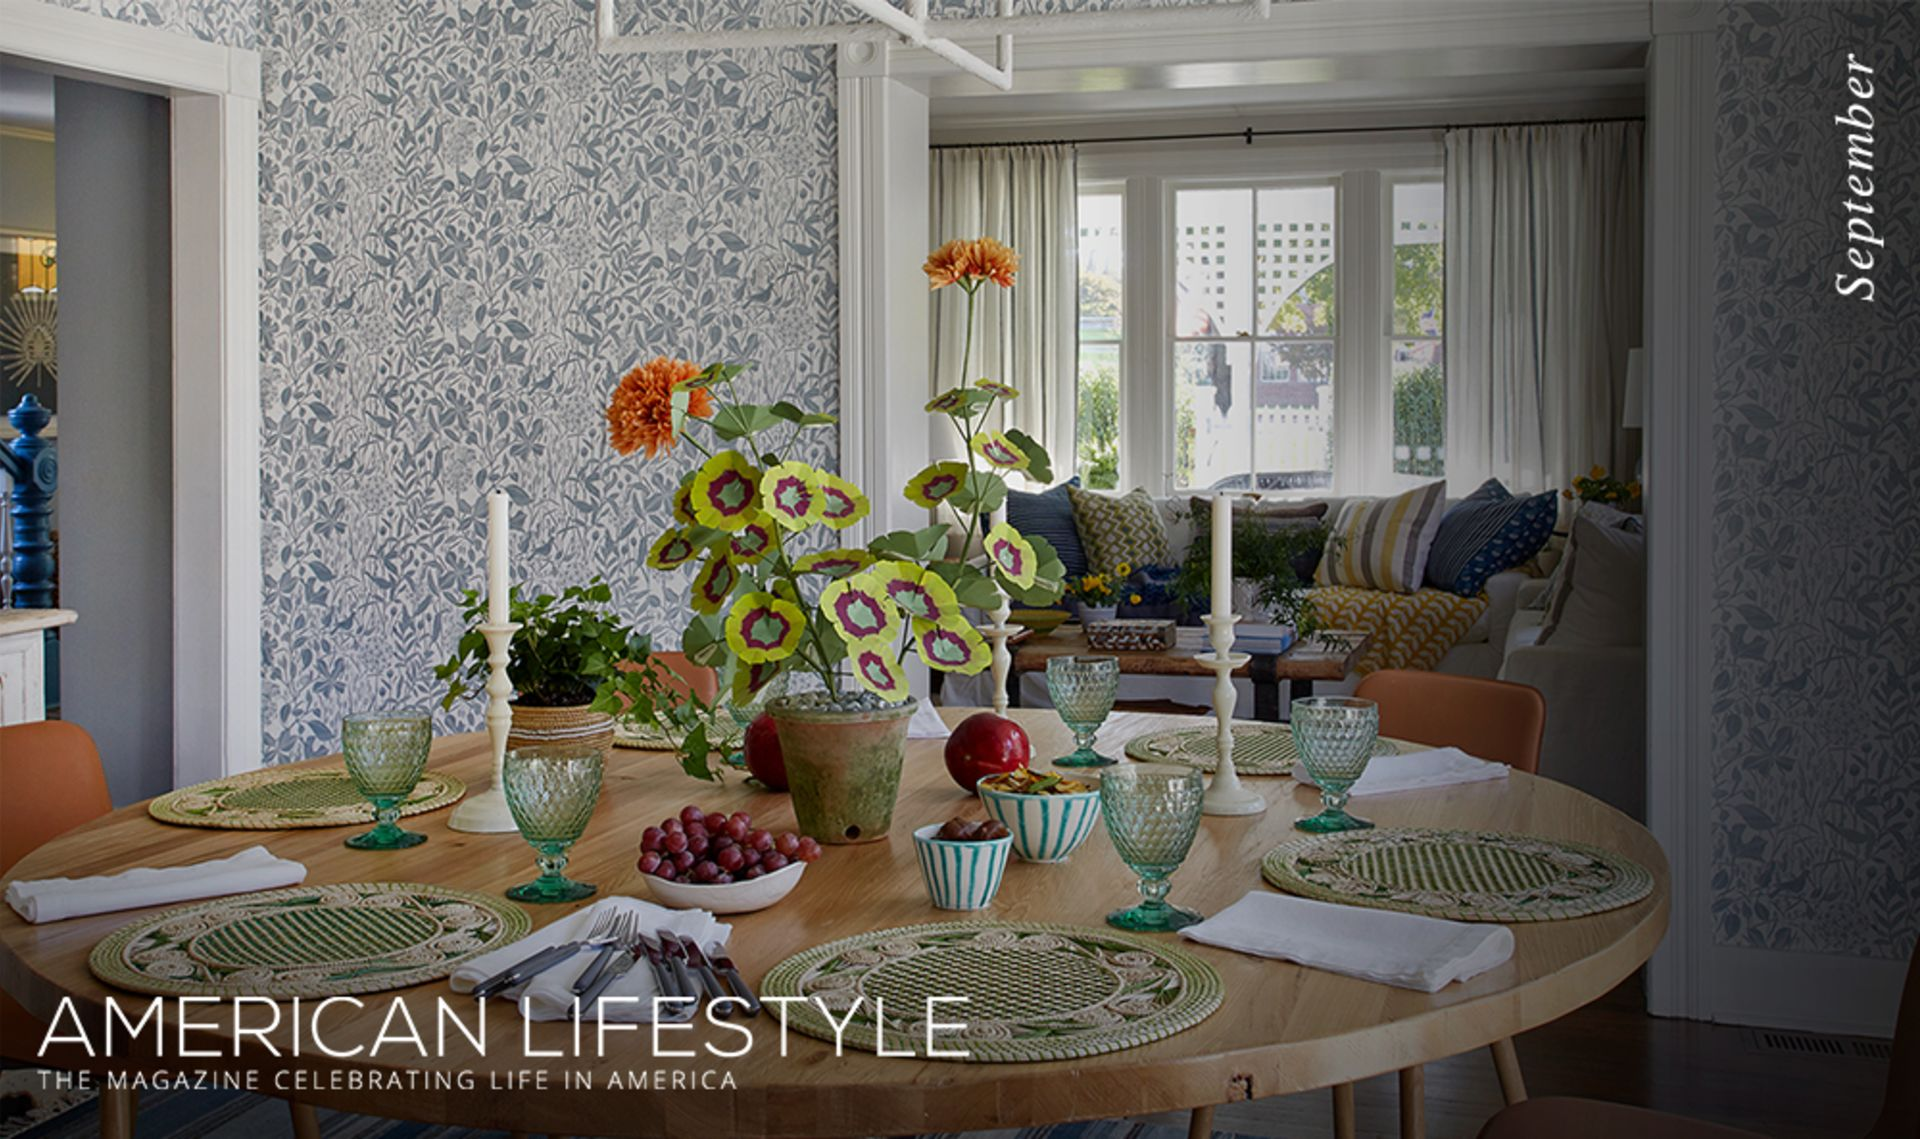 American Lifestyle September Edition